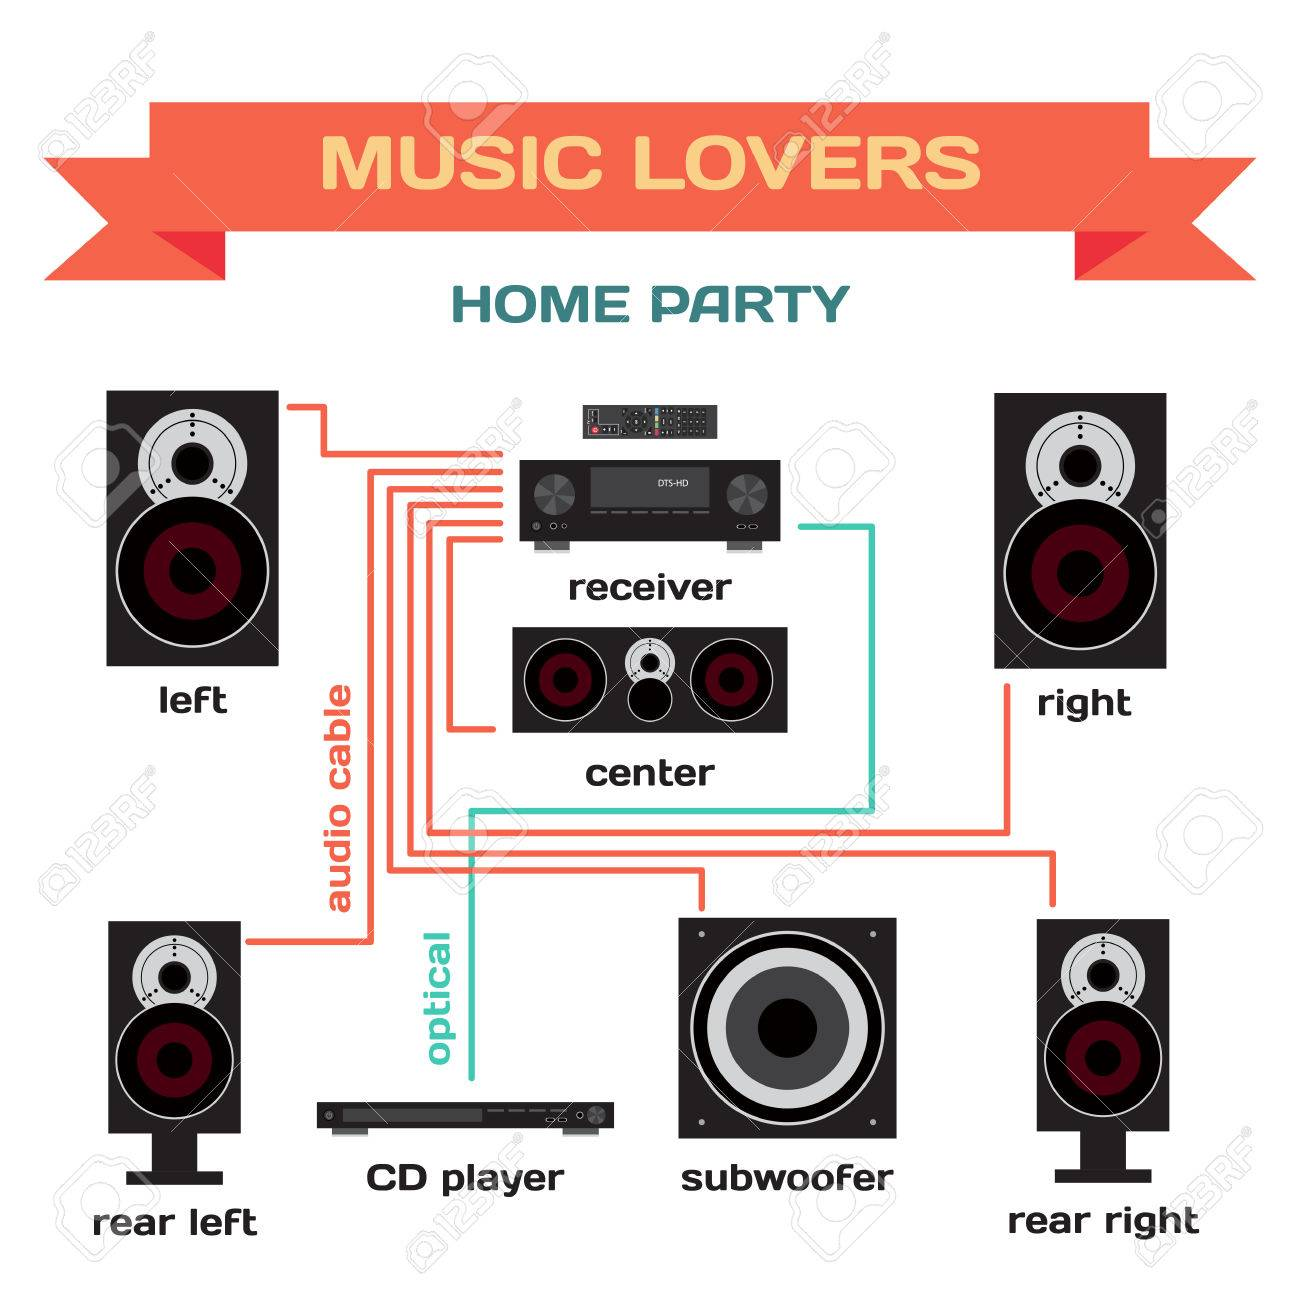 Wiring A Home Music System Diagrams Source Sound For Party Flat Design Connect The Audio Vector